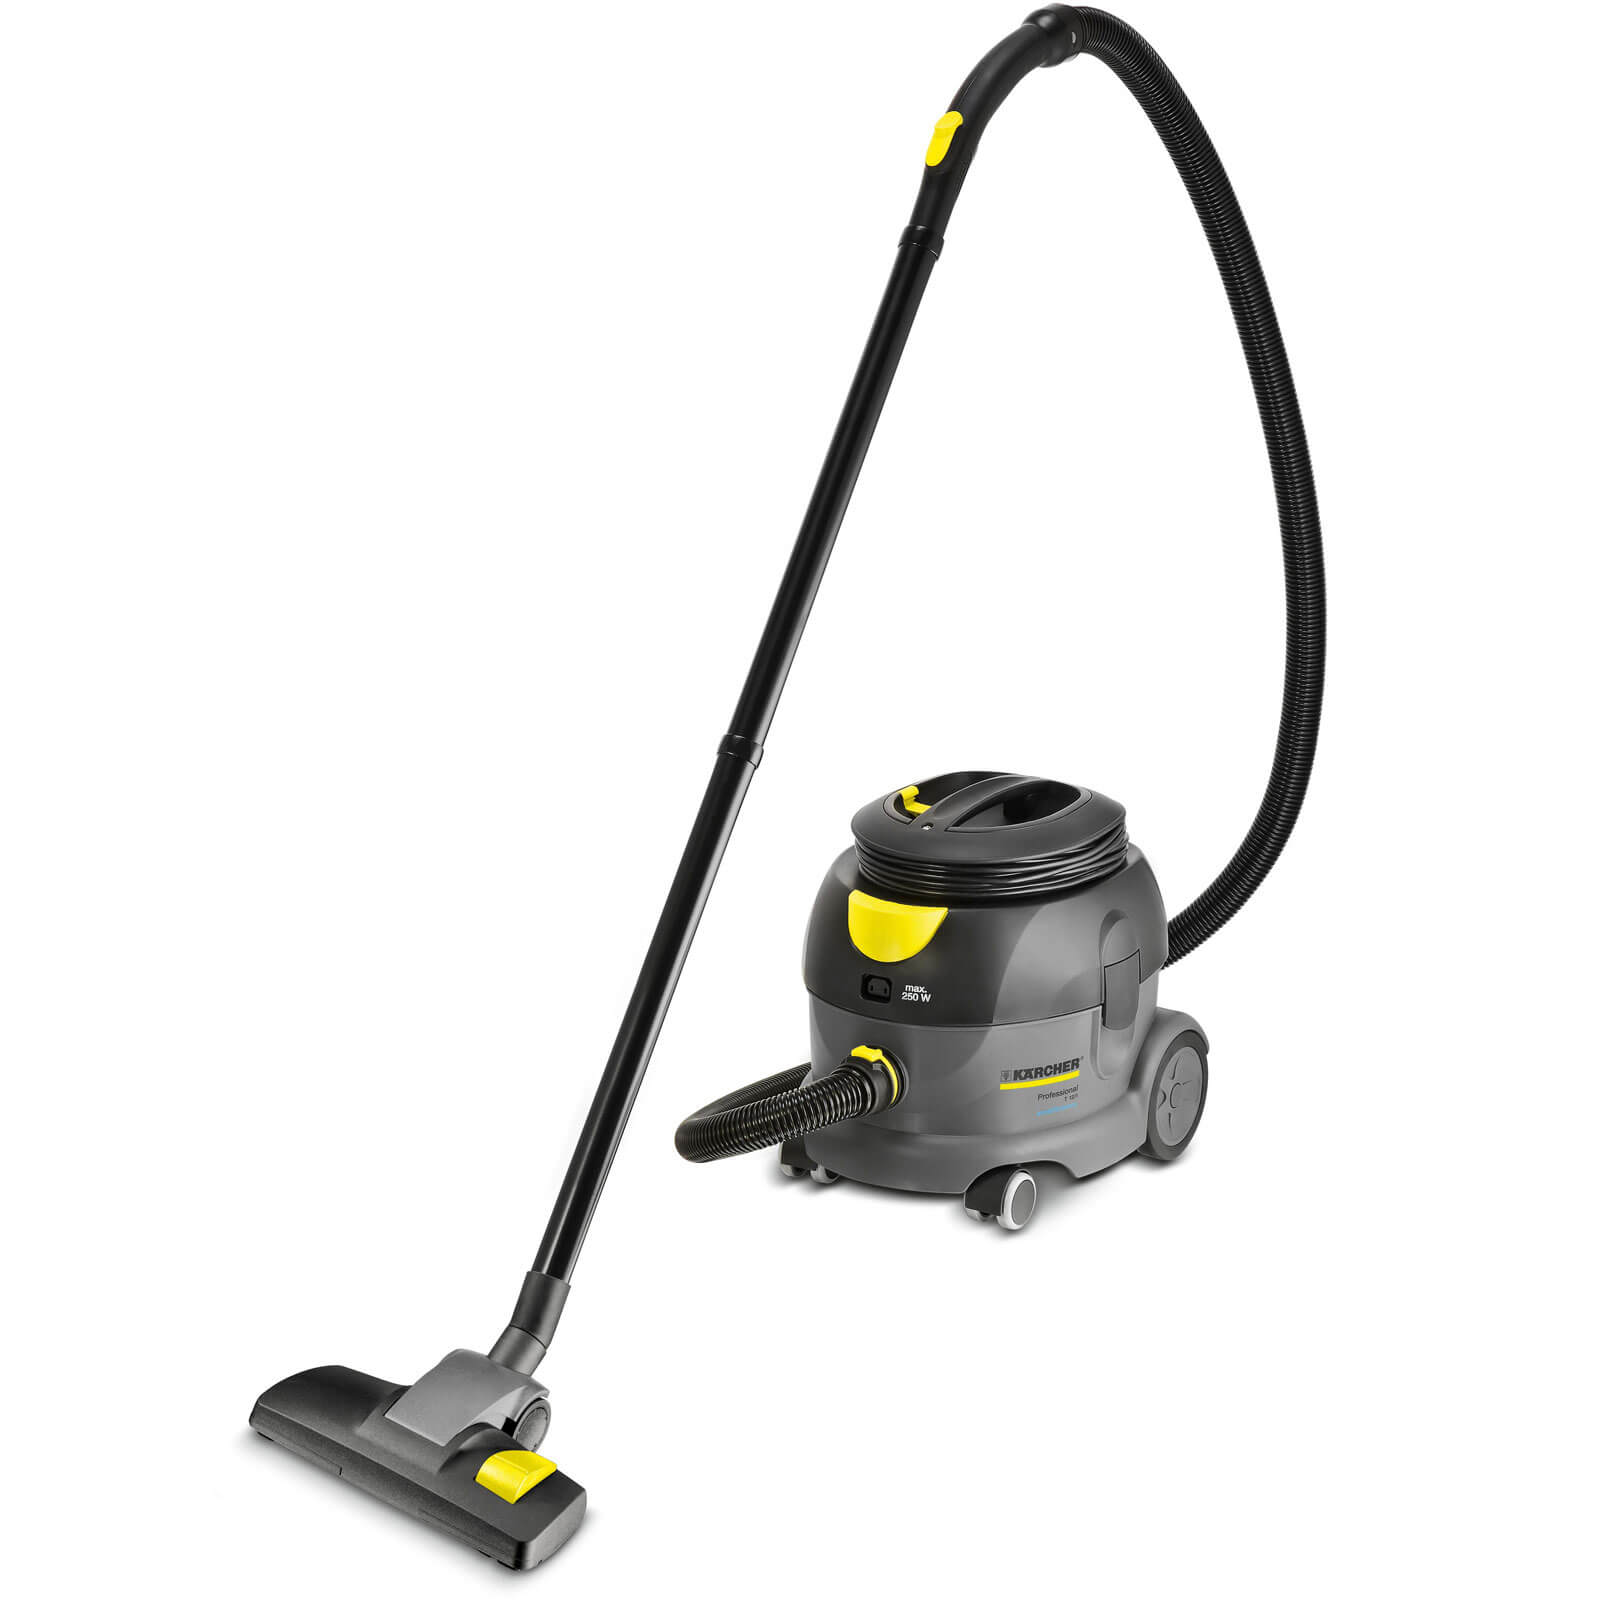 Karcher T 121 ECO Professional Vacuum Cleaner 240v